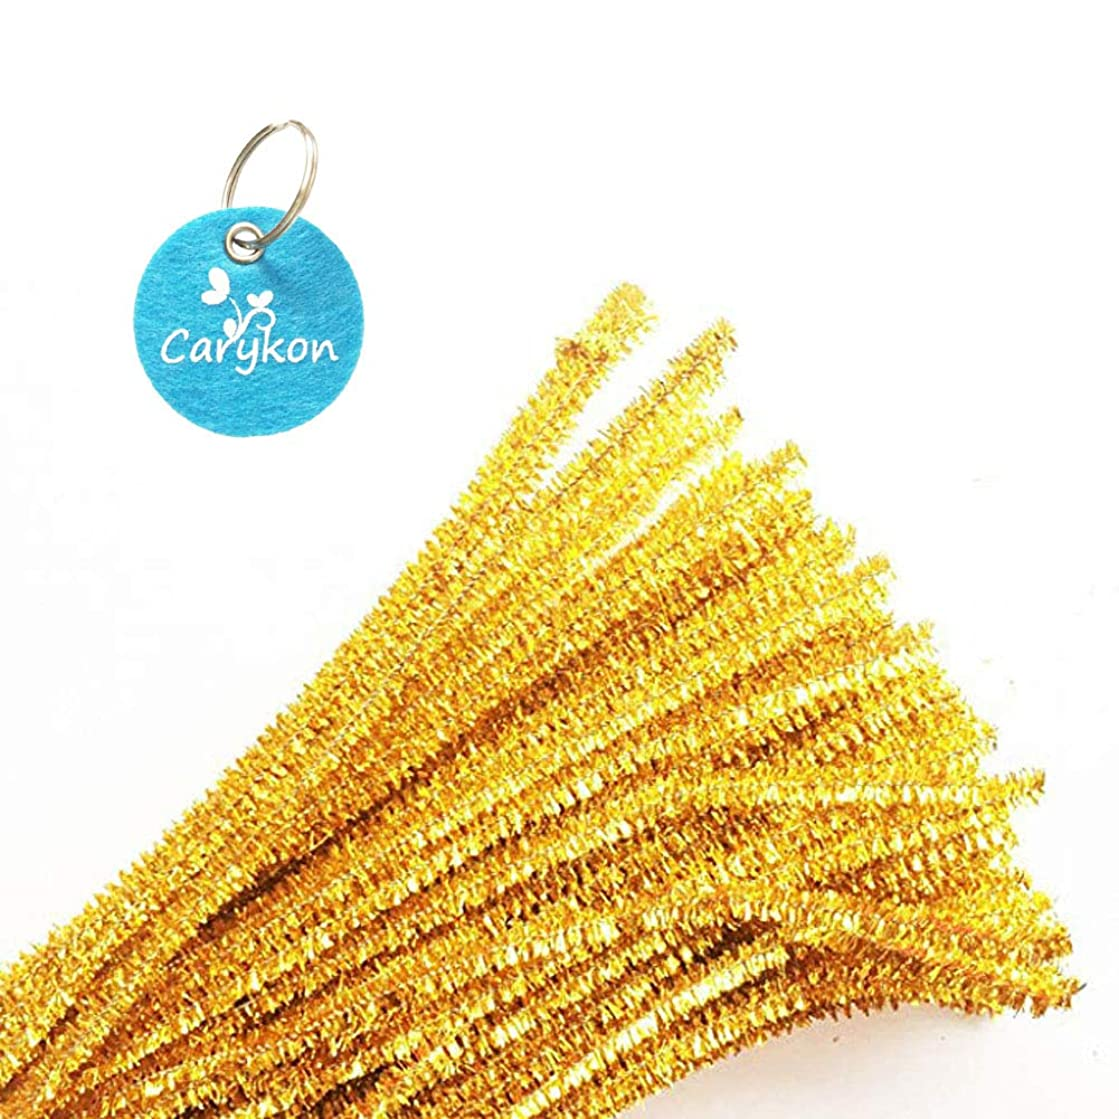 Caryko Tinsel Creative Arts Chenille Stems 6 mm x 12 Inch, Pack of 200 (Gold)